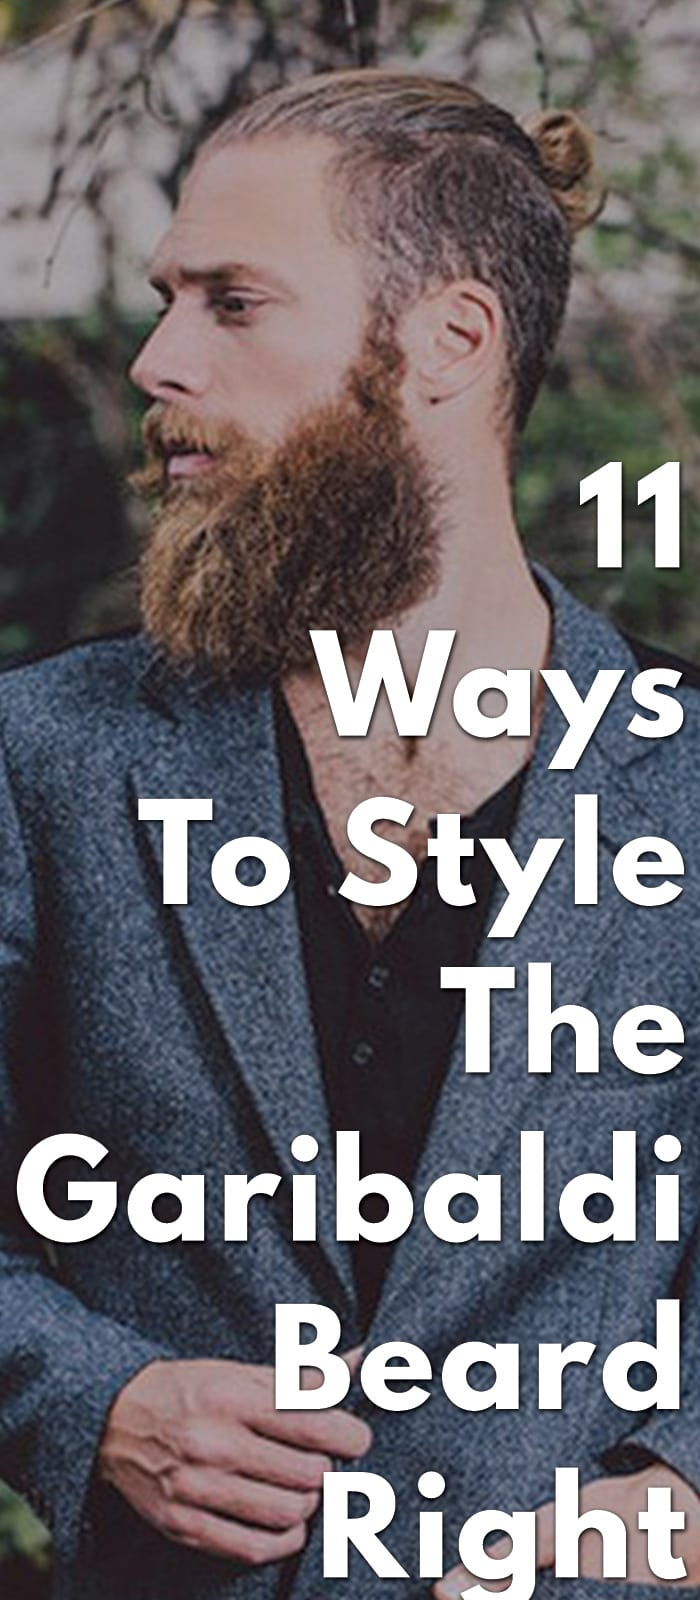 11-Ways-To-Style-The-Garibaldi-Beard-Right